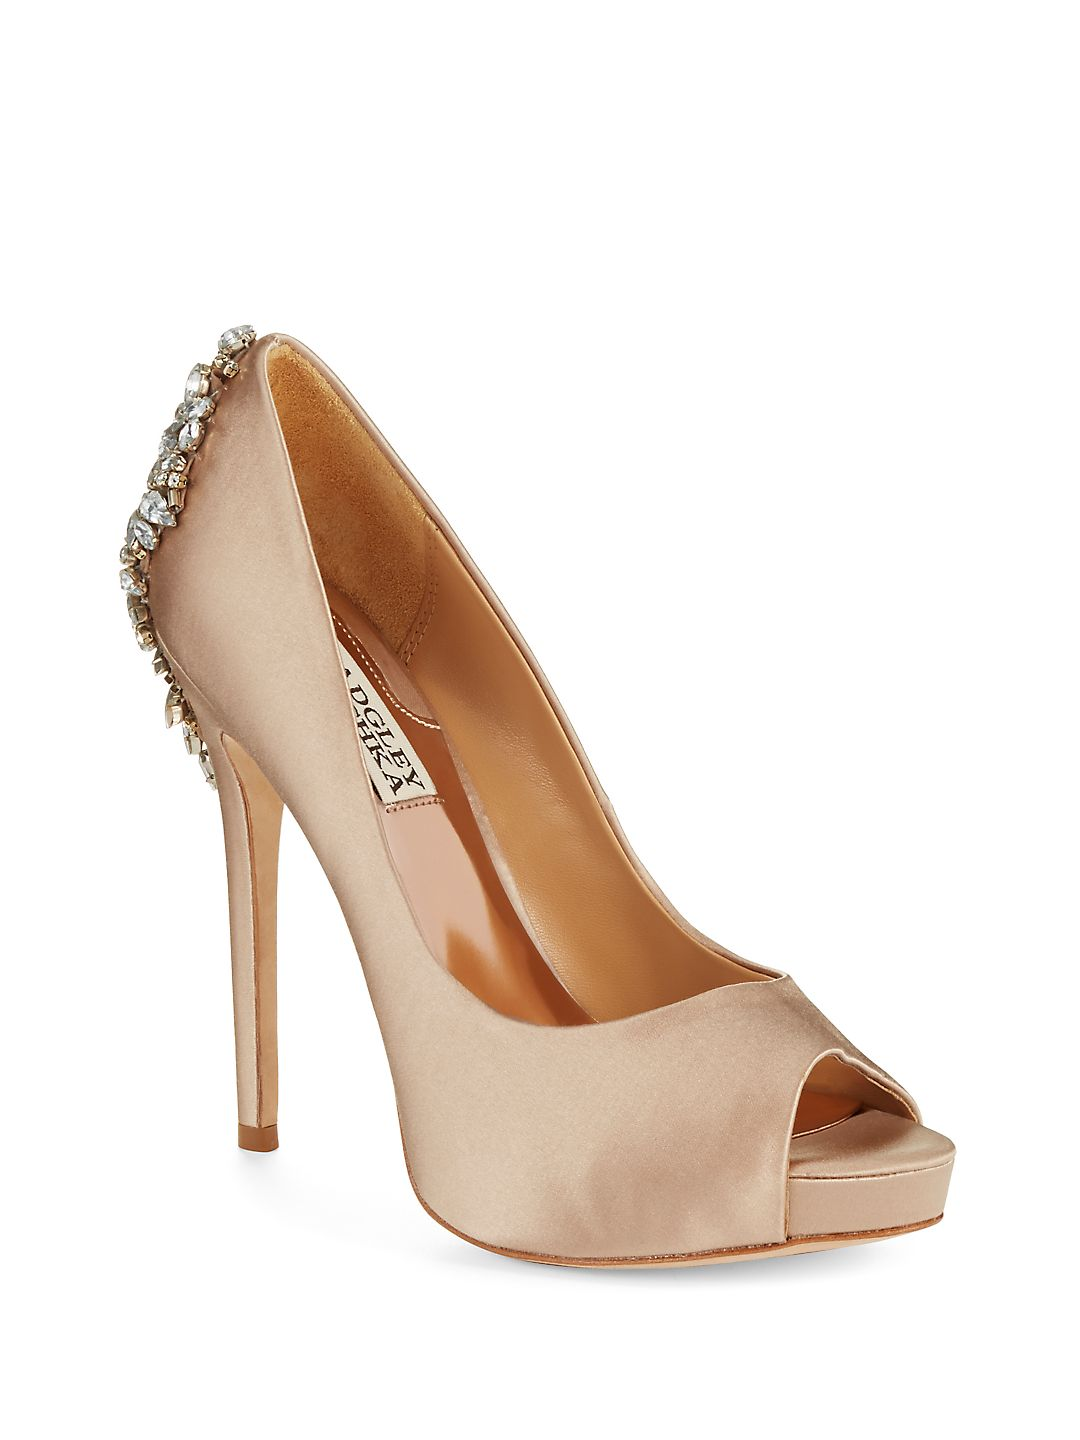 Kiara Jeweled Satin Peep-Toe Pumps